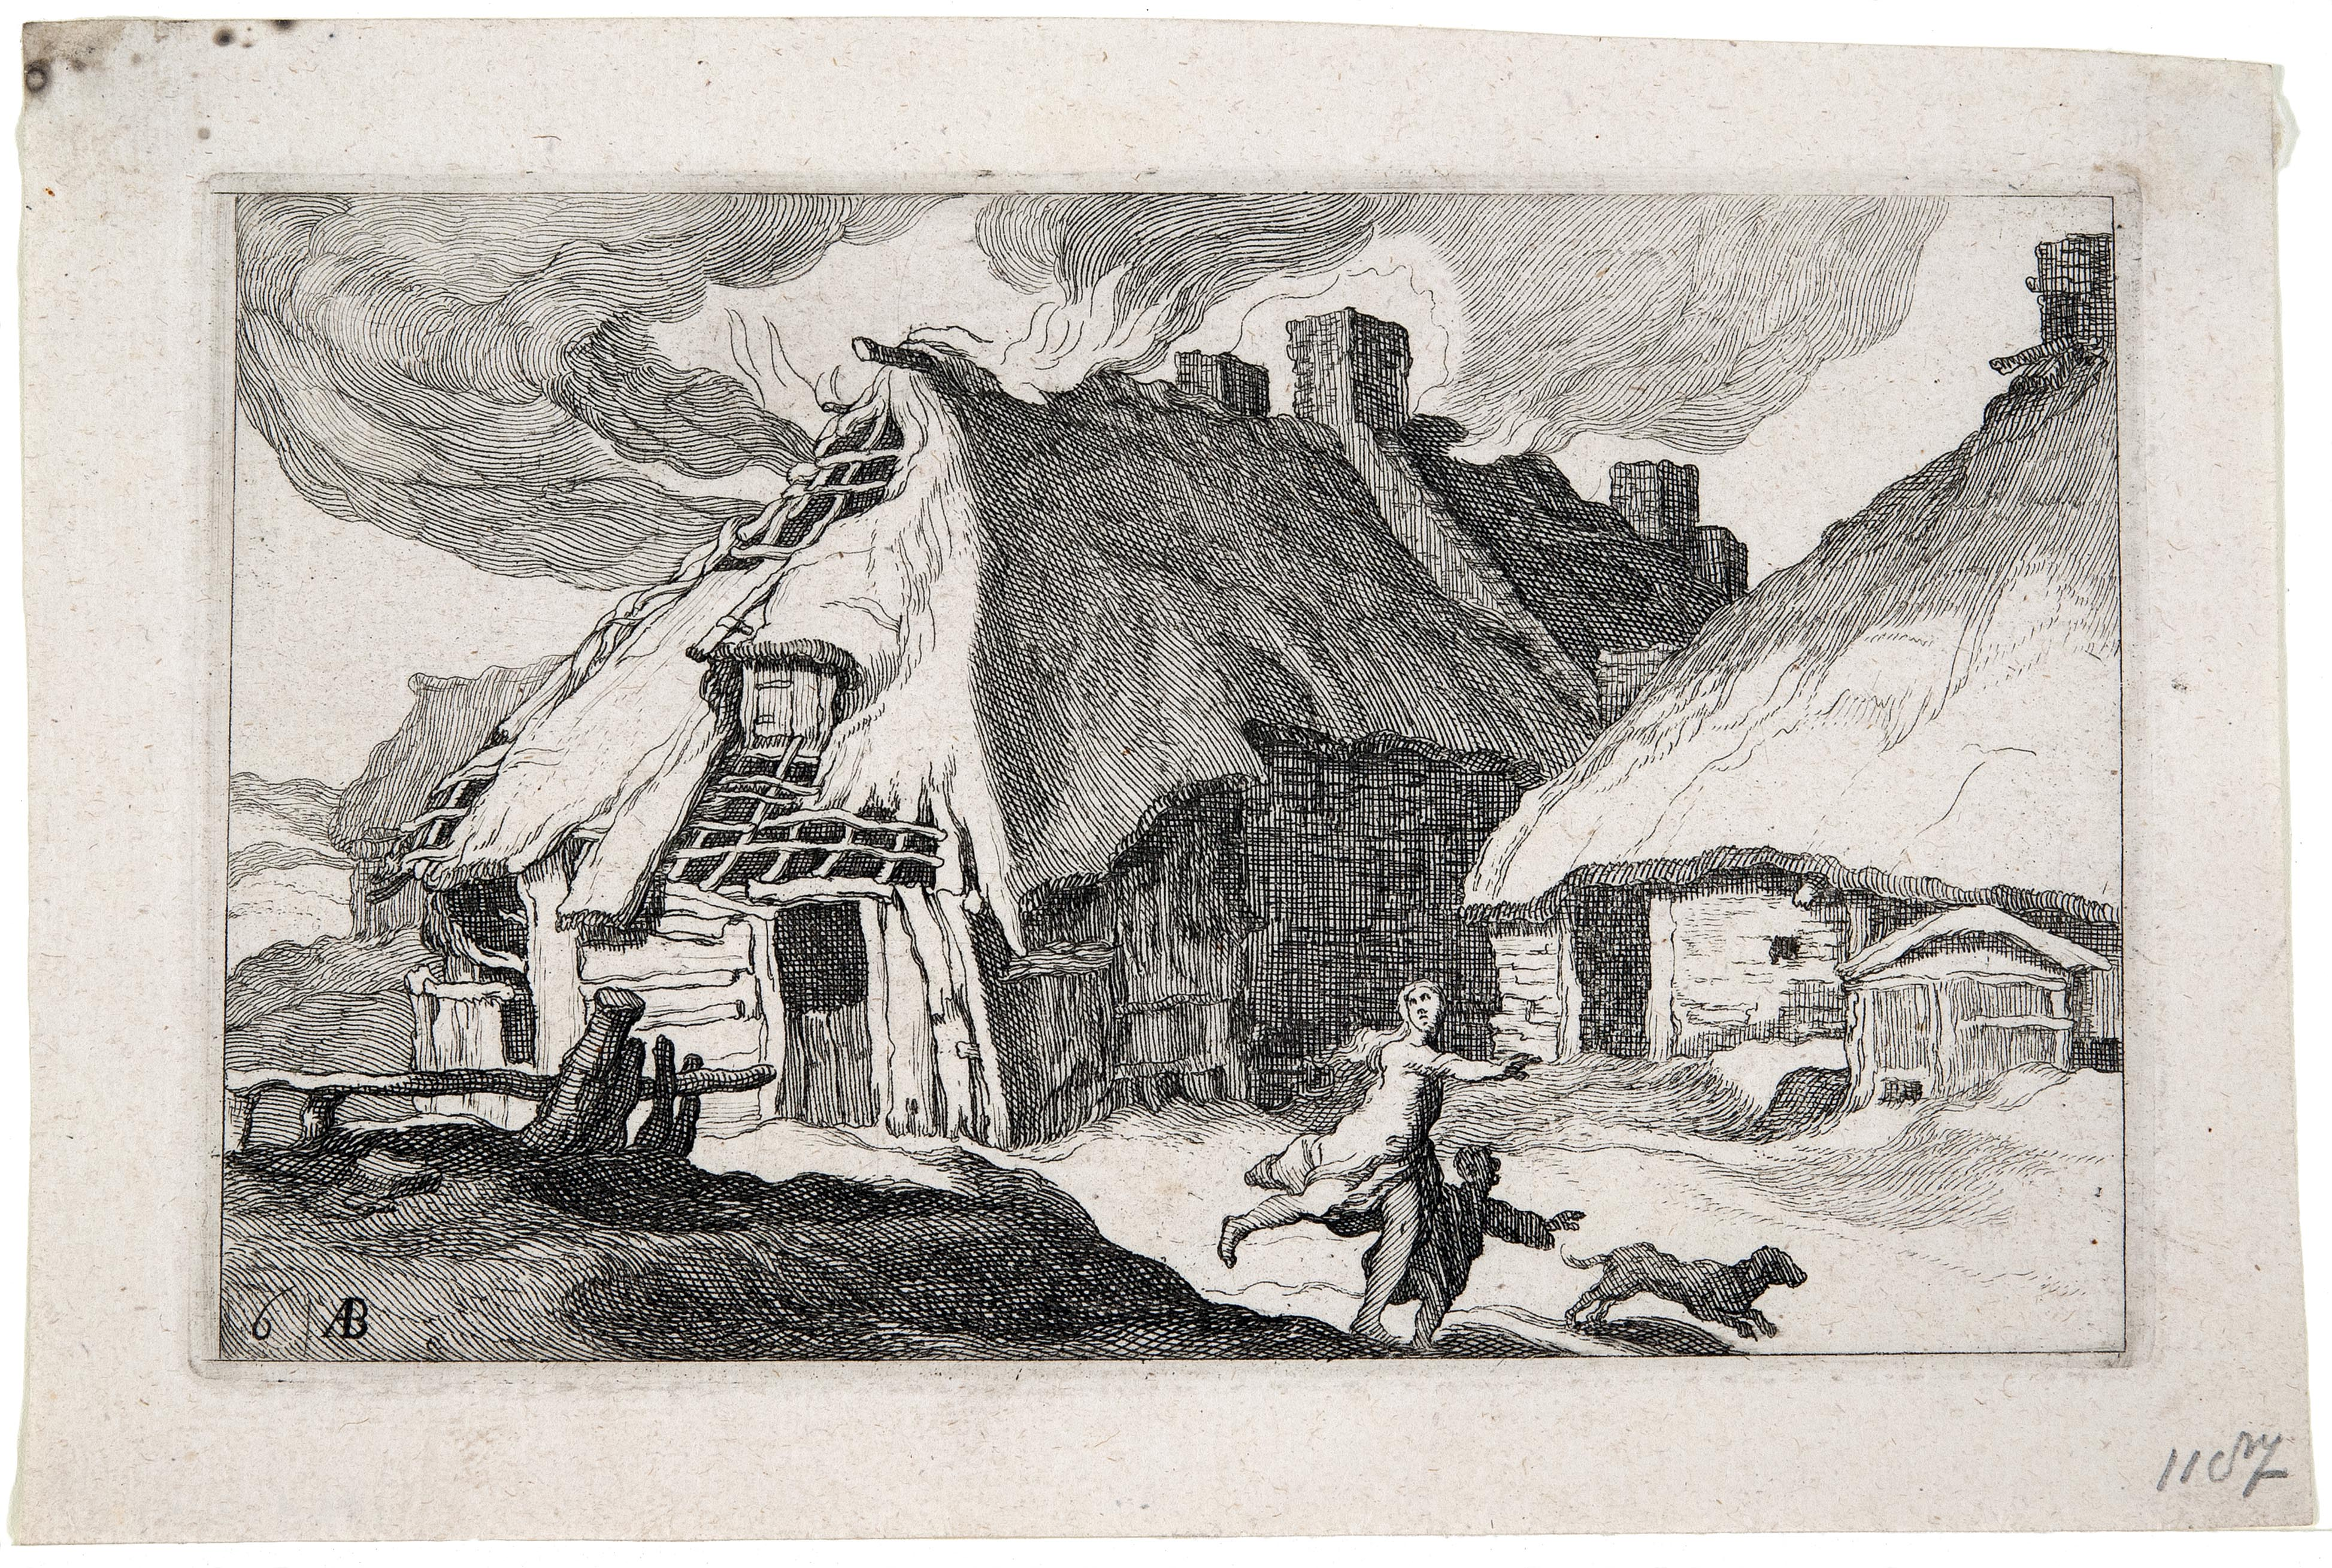 Abraham Bloemaert, Landscapes with Farmhouses #6, 1564-1651